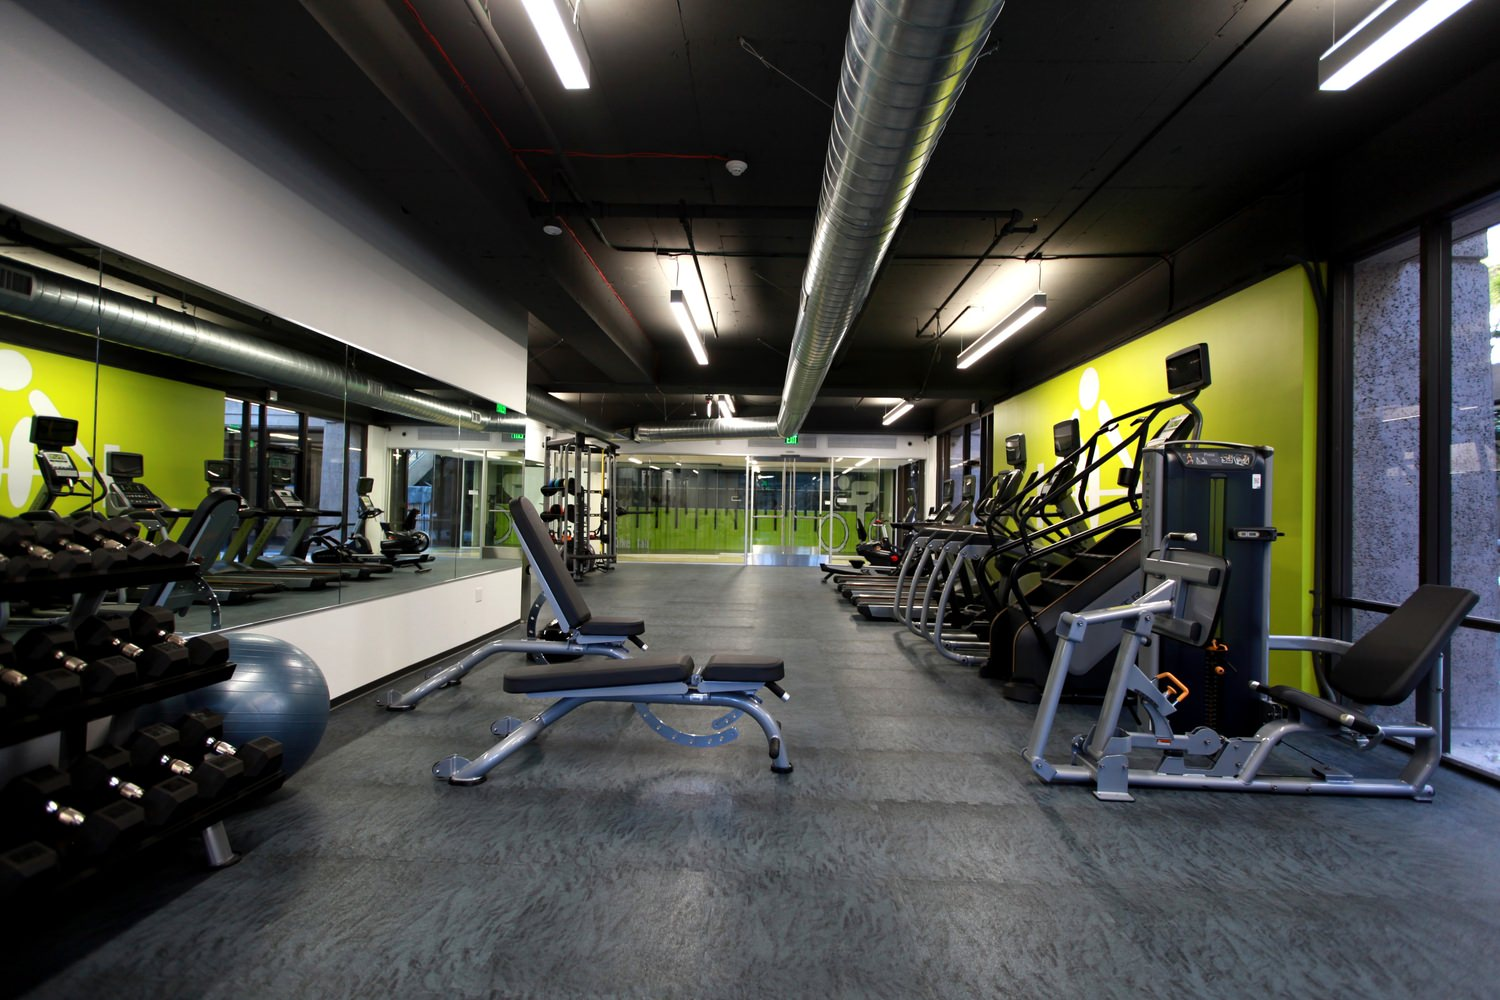 Gym that has a row of stair masters and other exercise equipment next to the walls and mirrors.